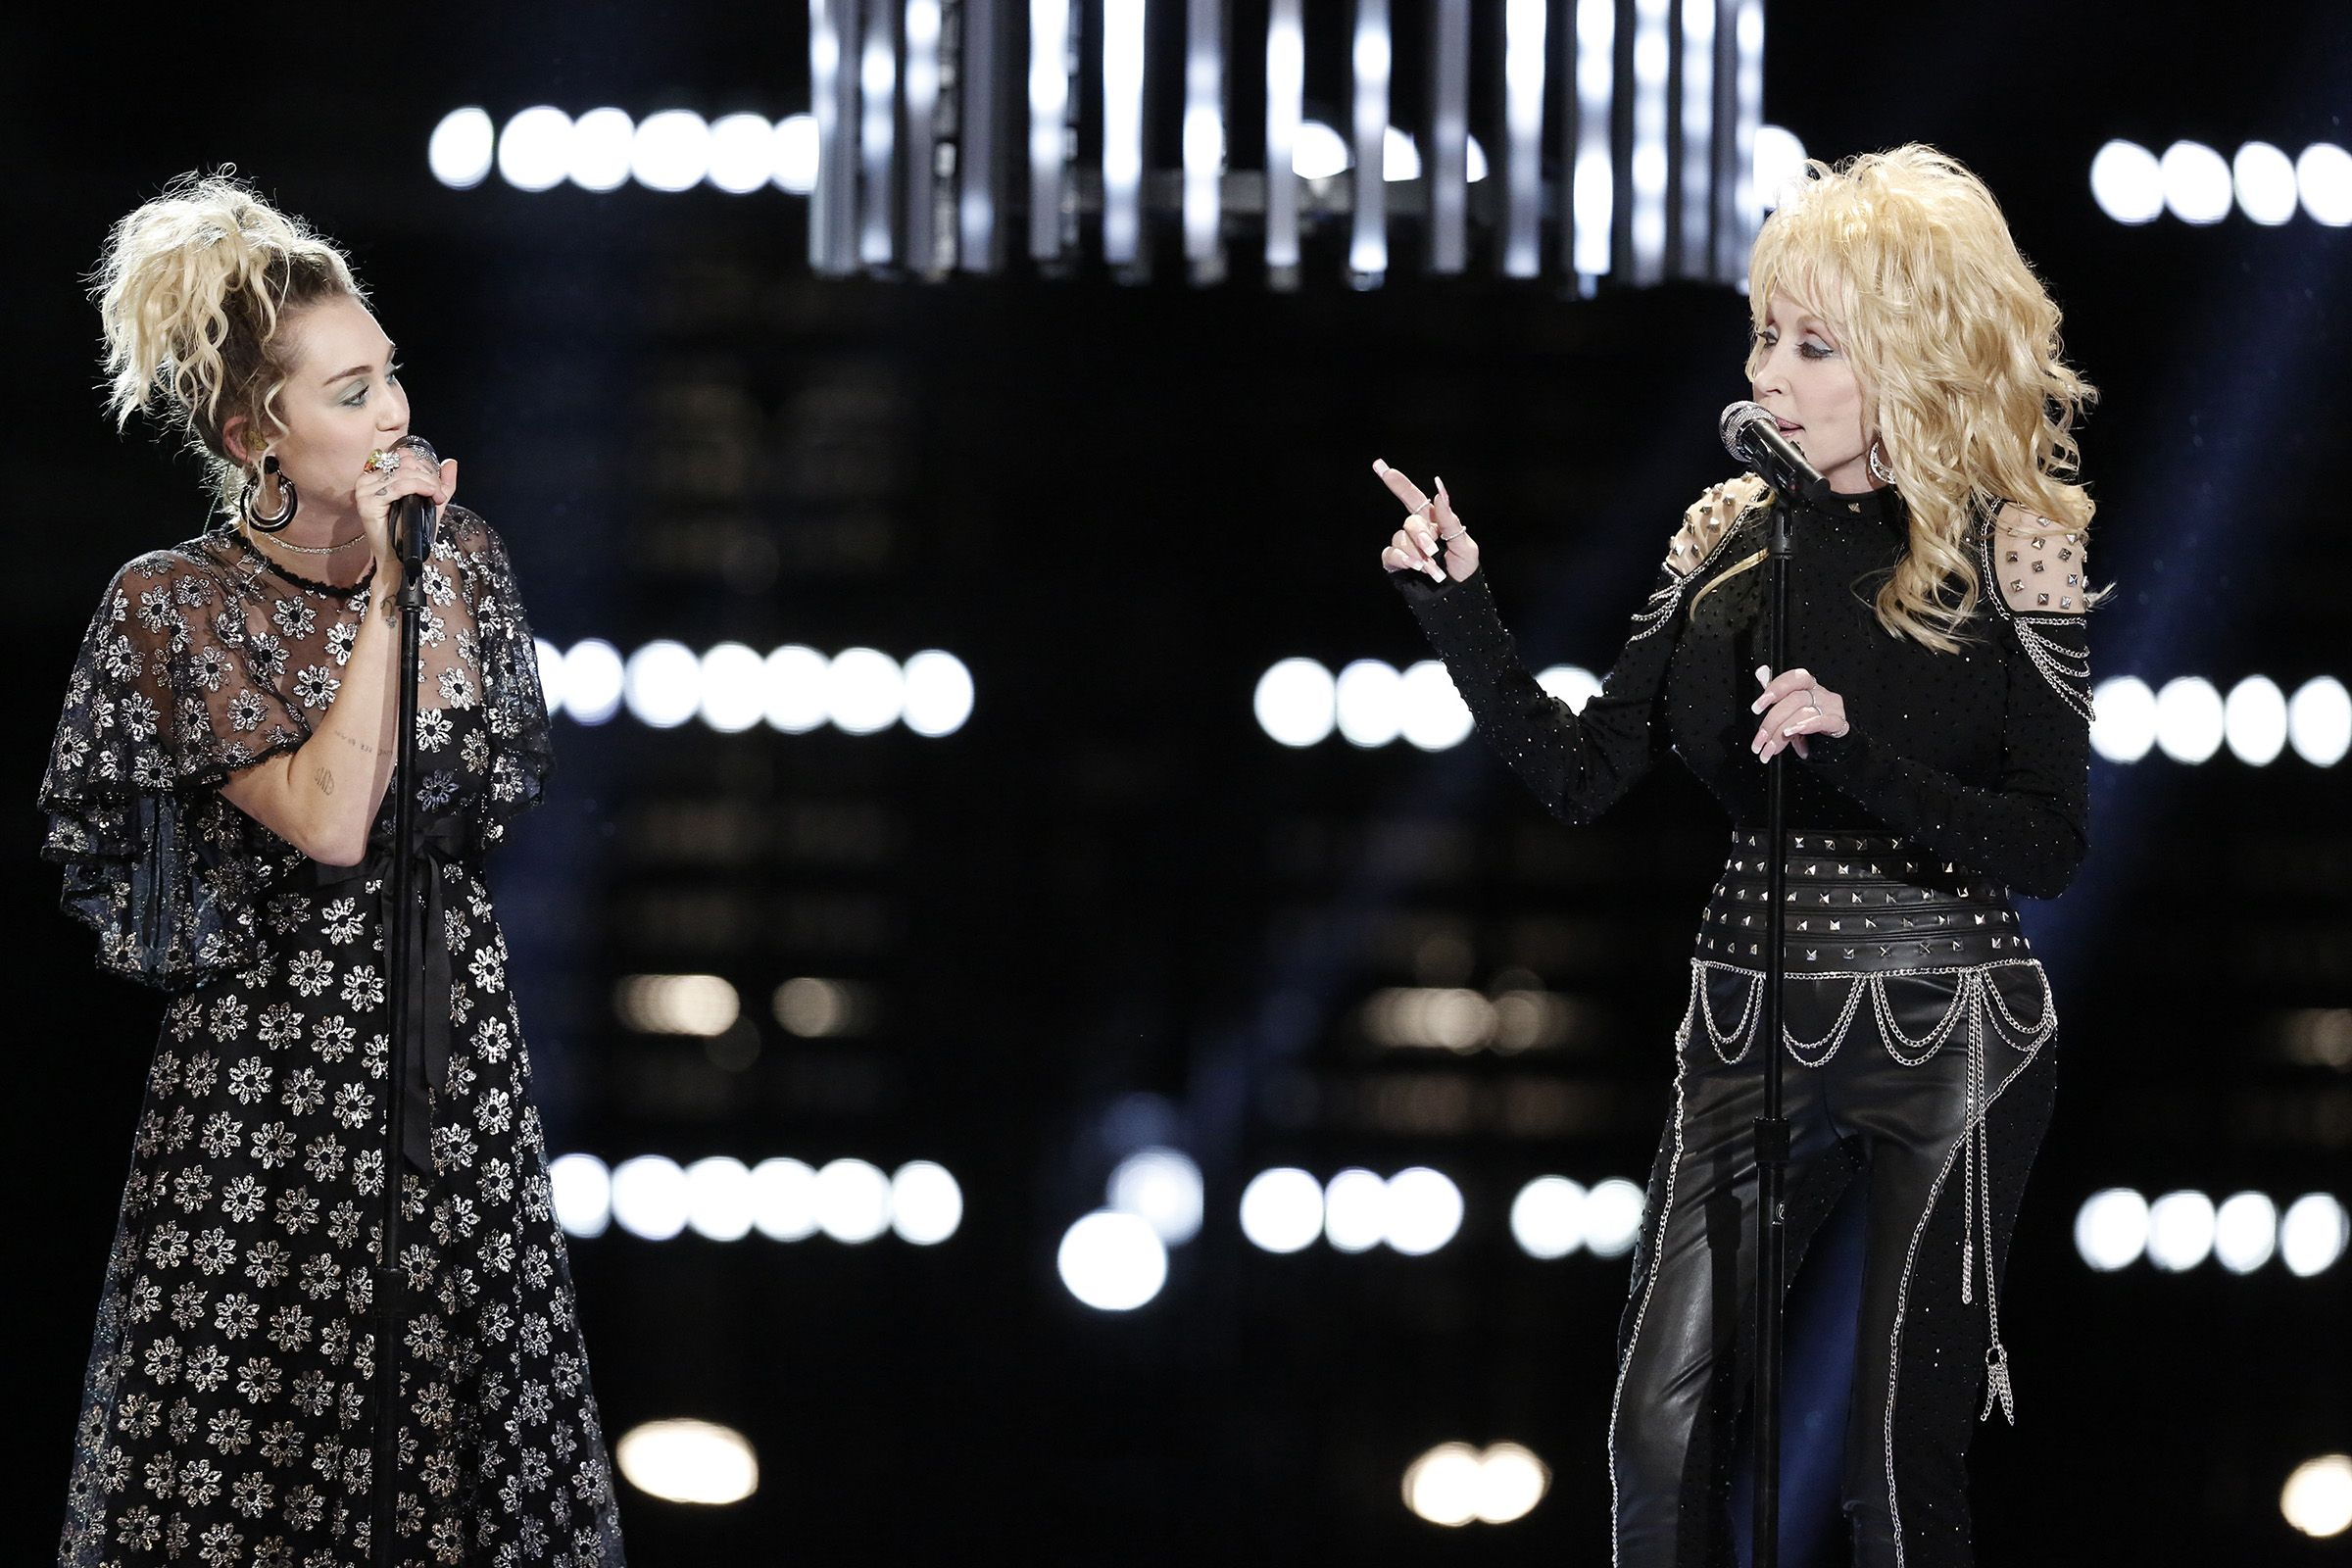 Is dolly parton related to billy ray cyrus